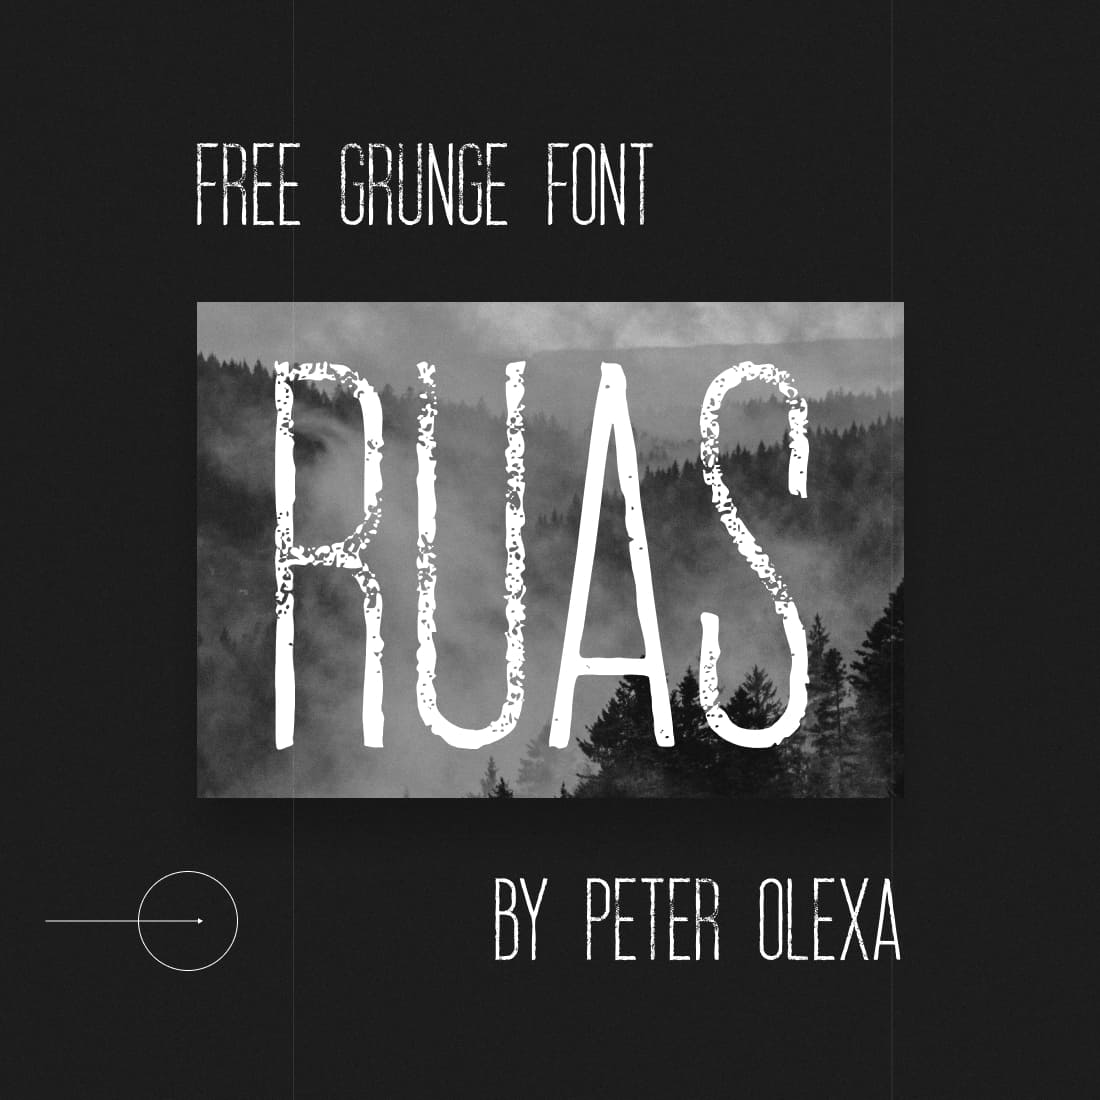 Main Cover for Grunge font free.